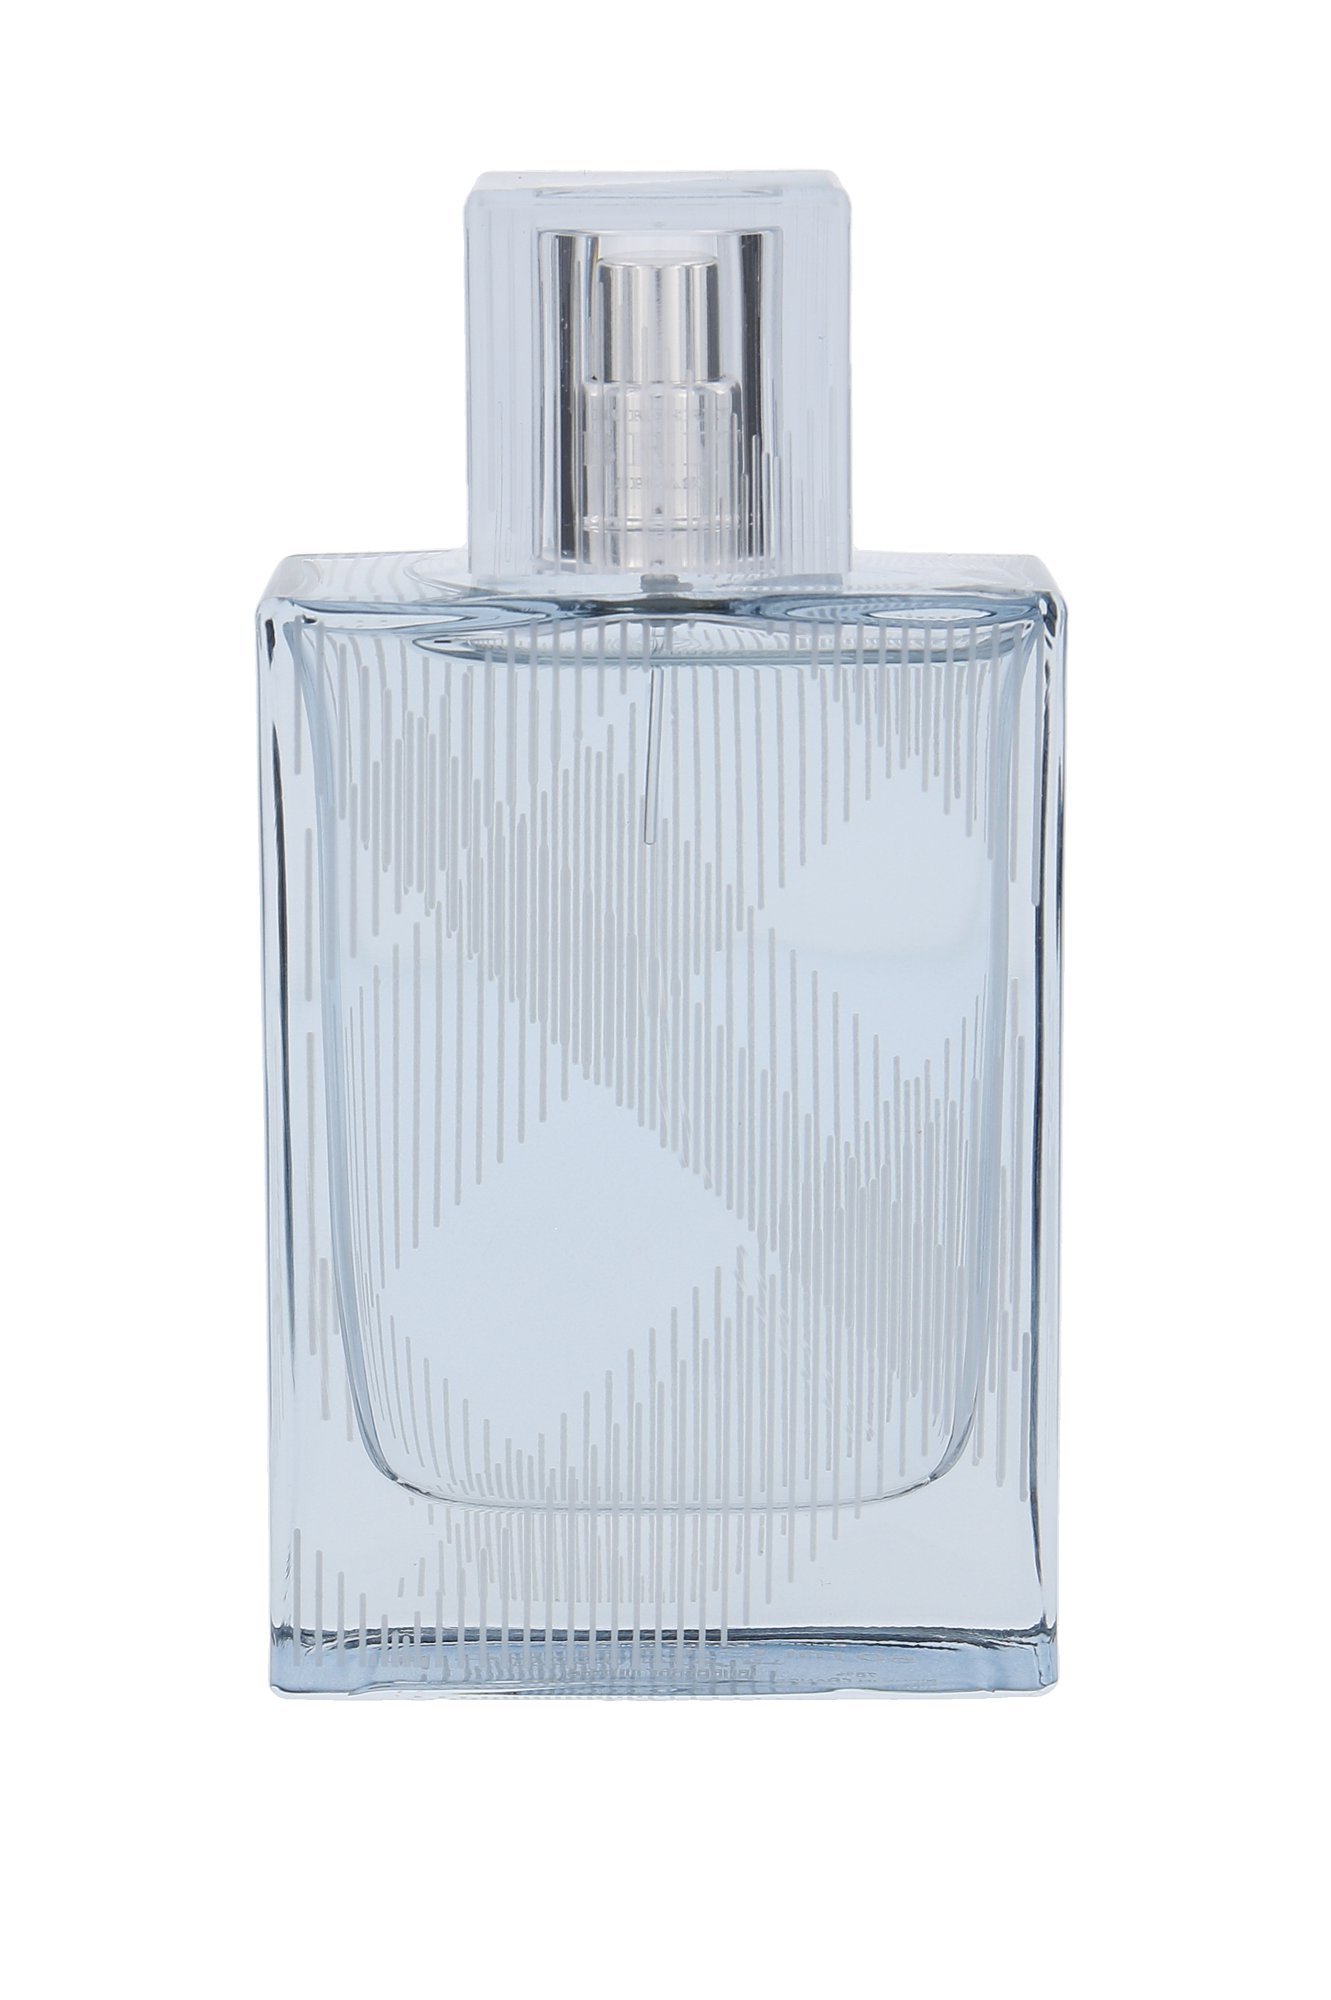 Burberry Brit, Toaletná voda 50ml, For Him